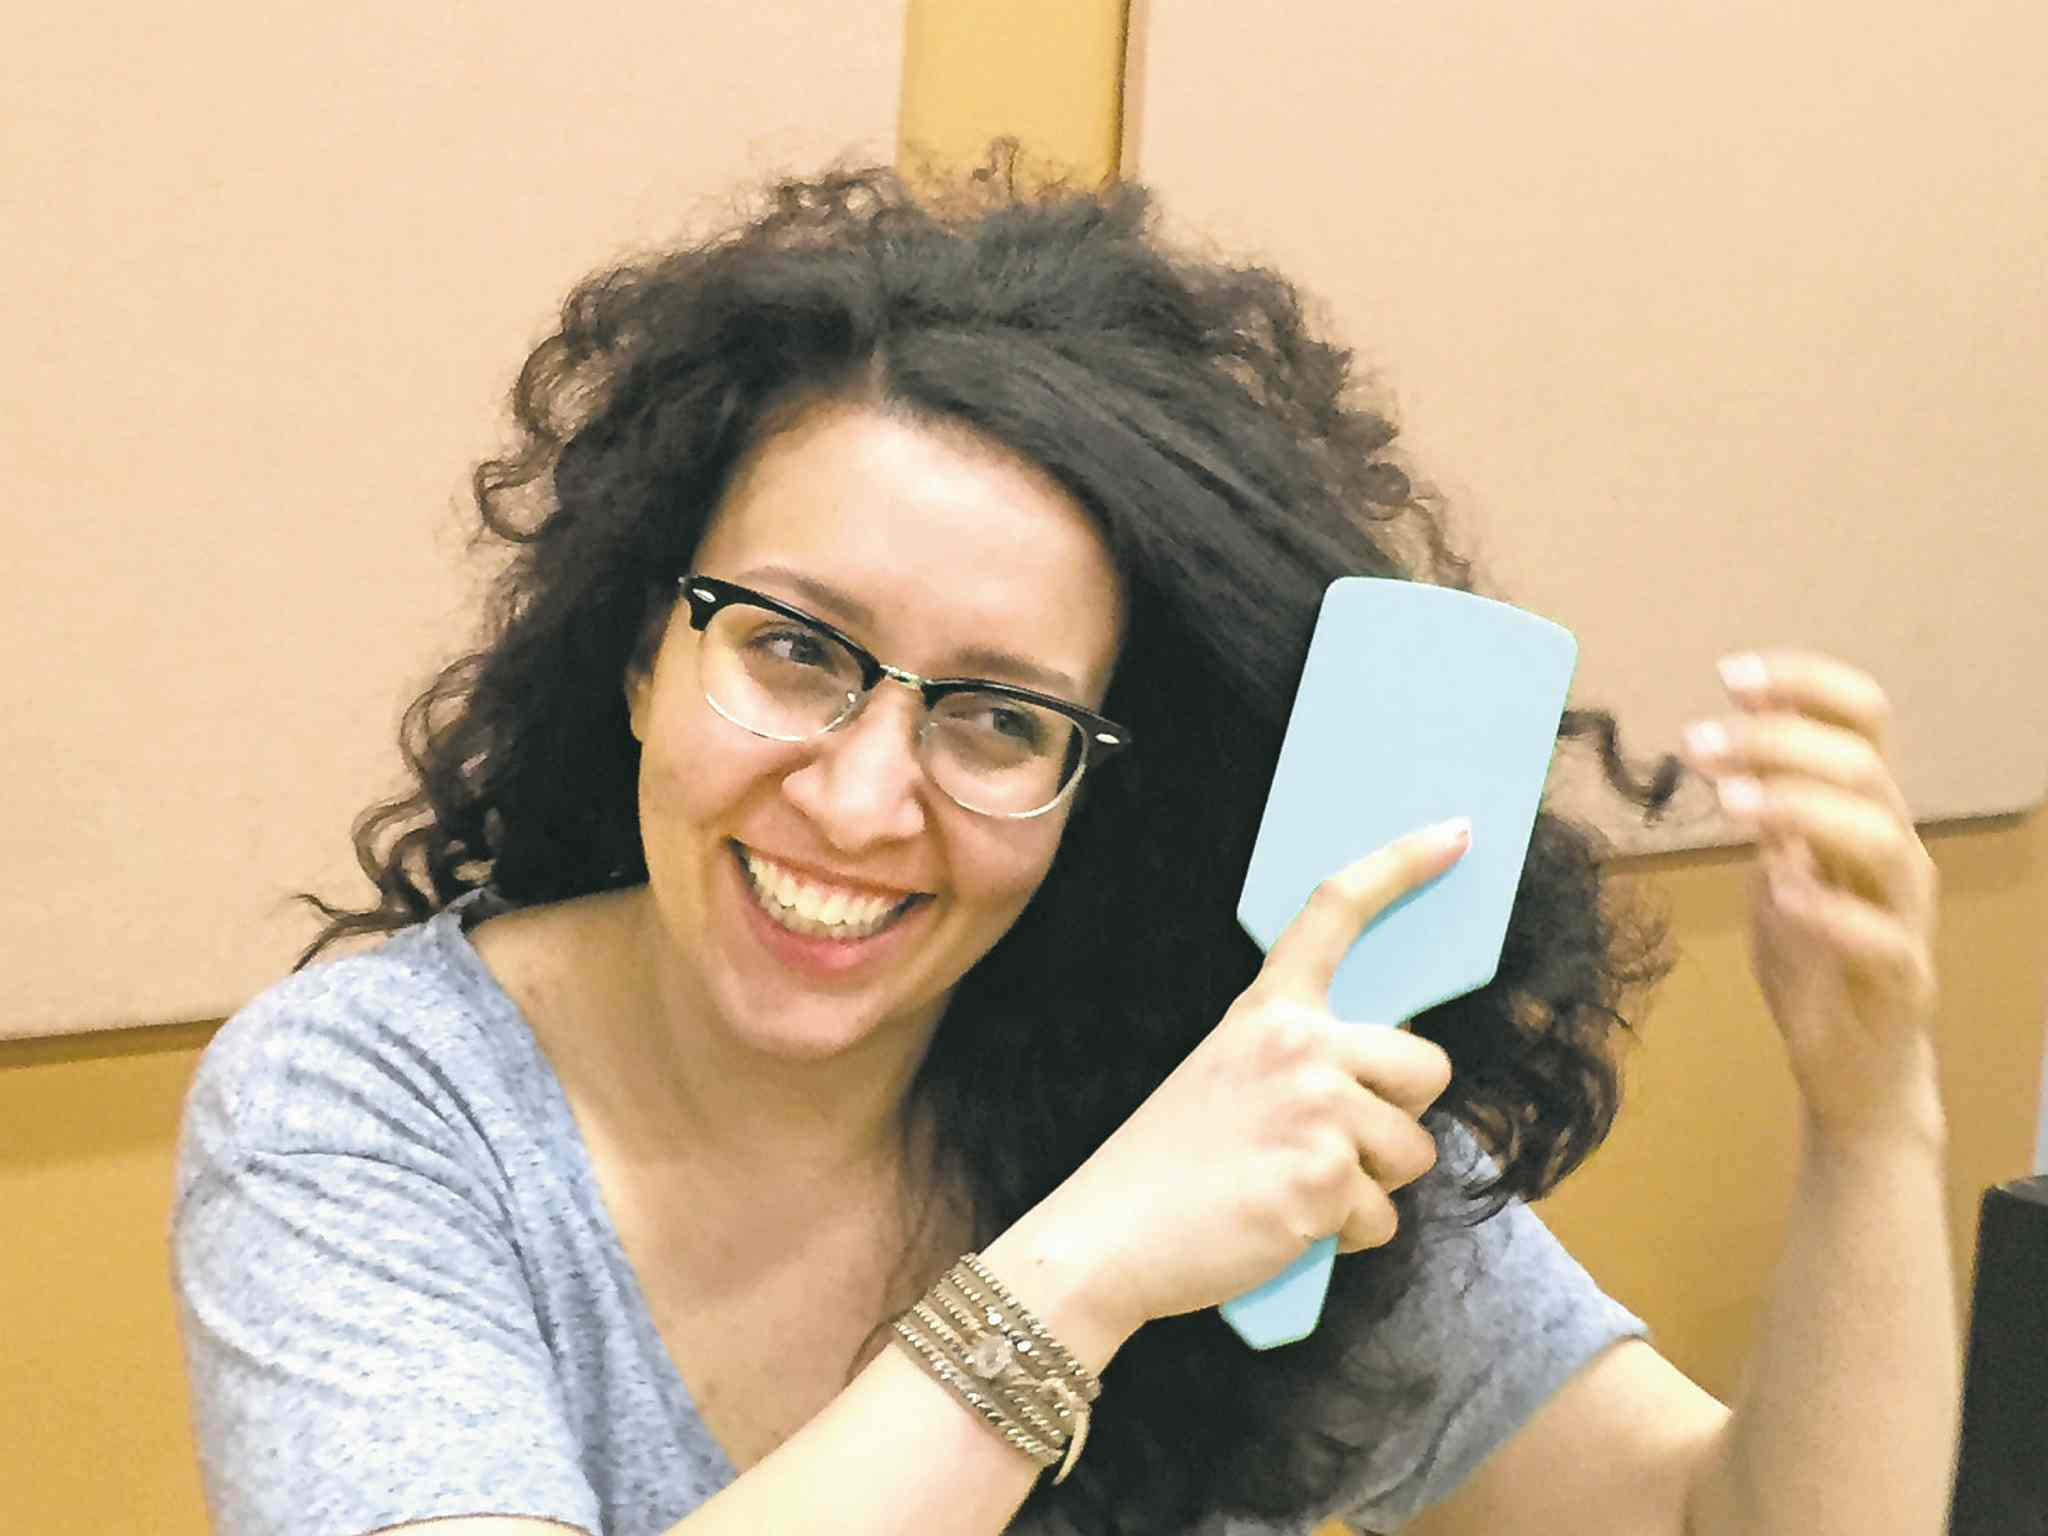 Brush with greatness: Connie Manfredi's curly locks aren't all bad.